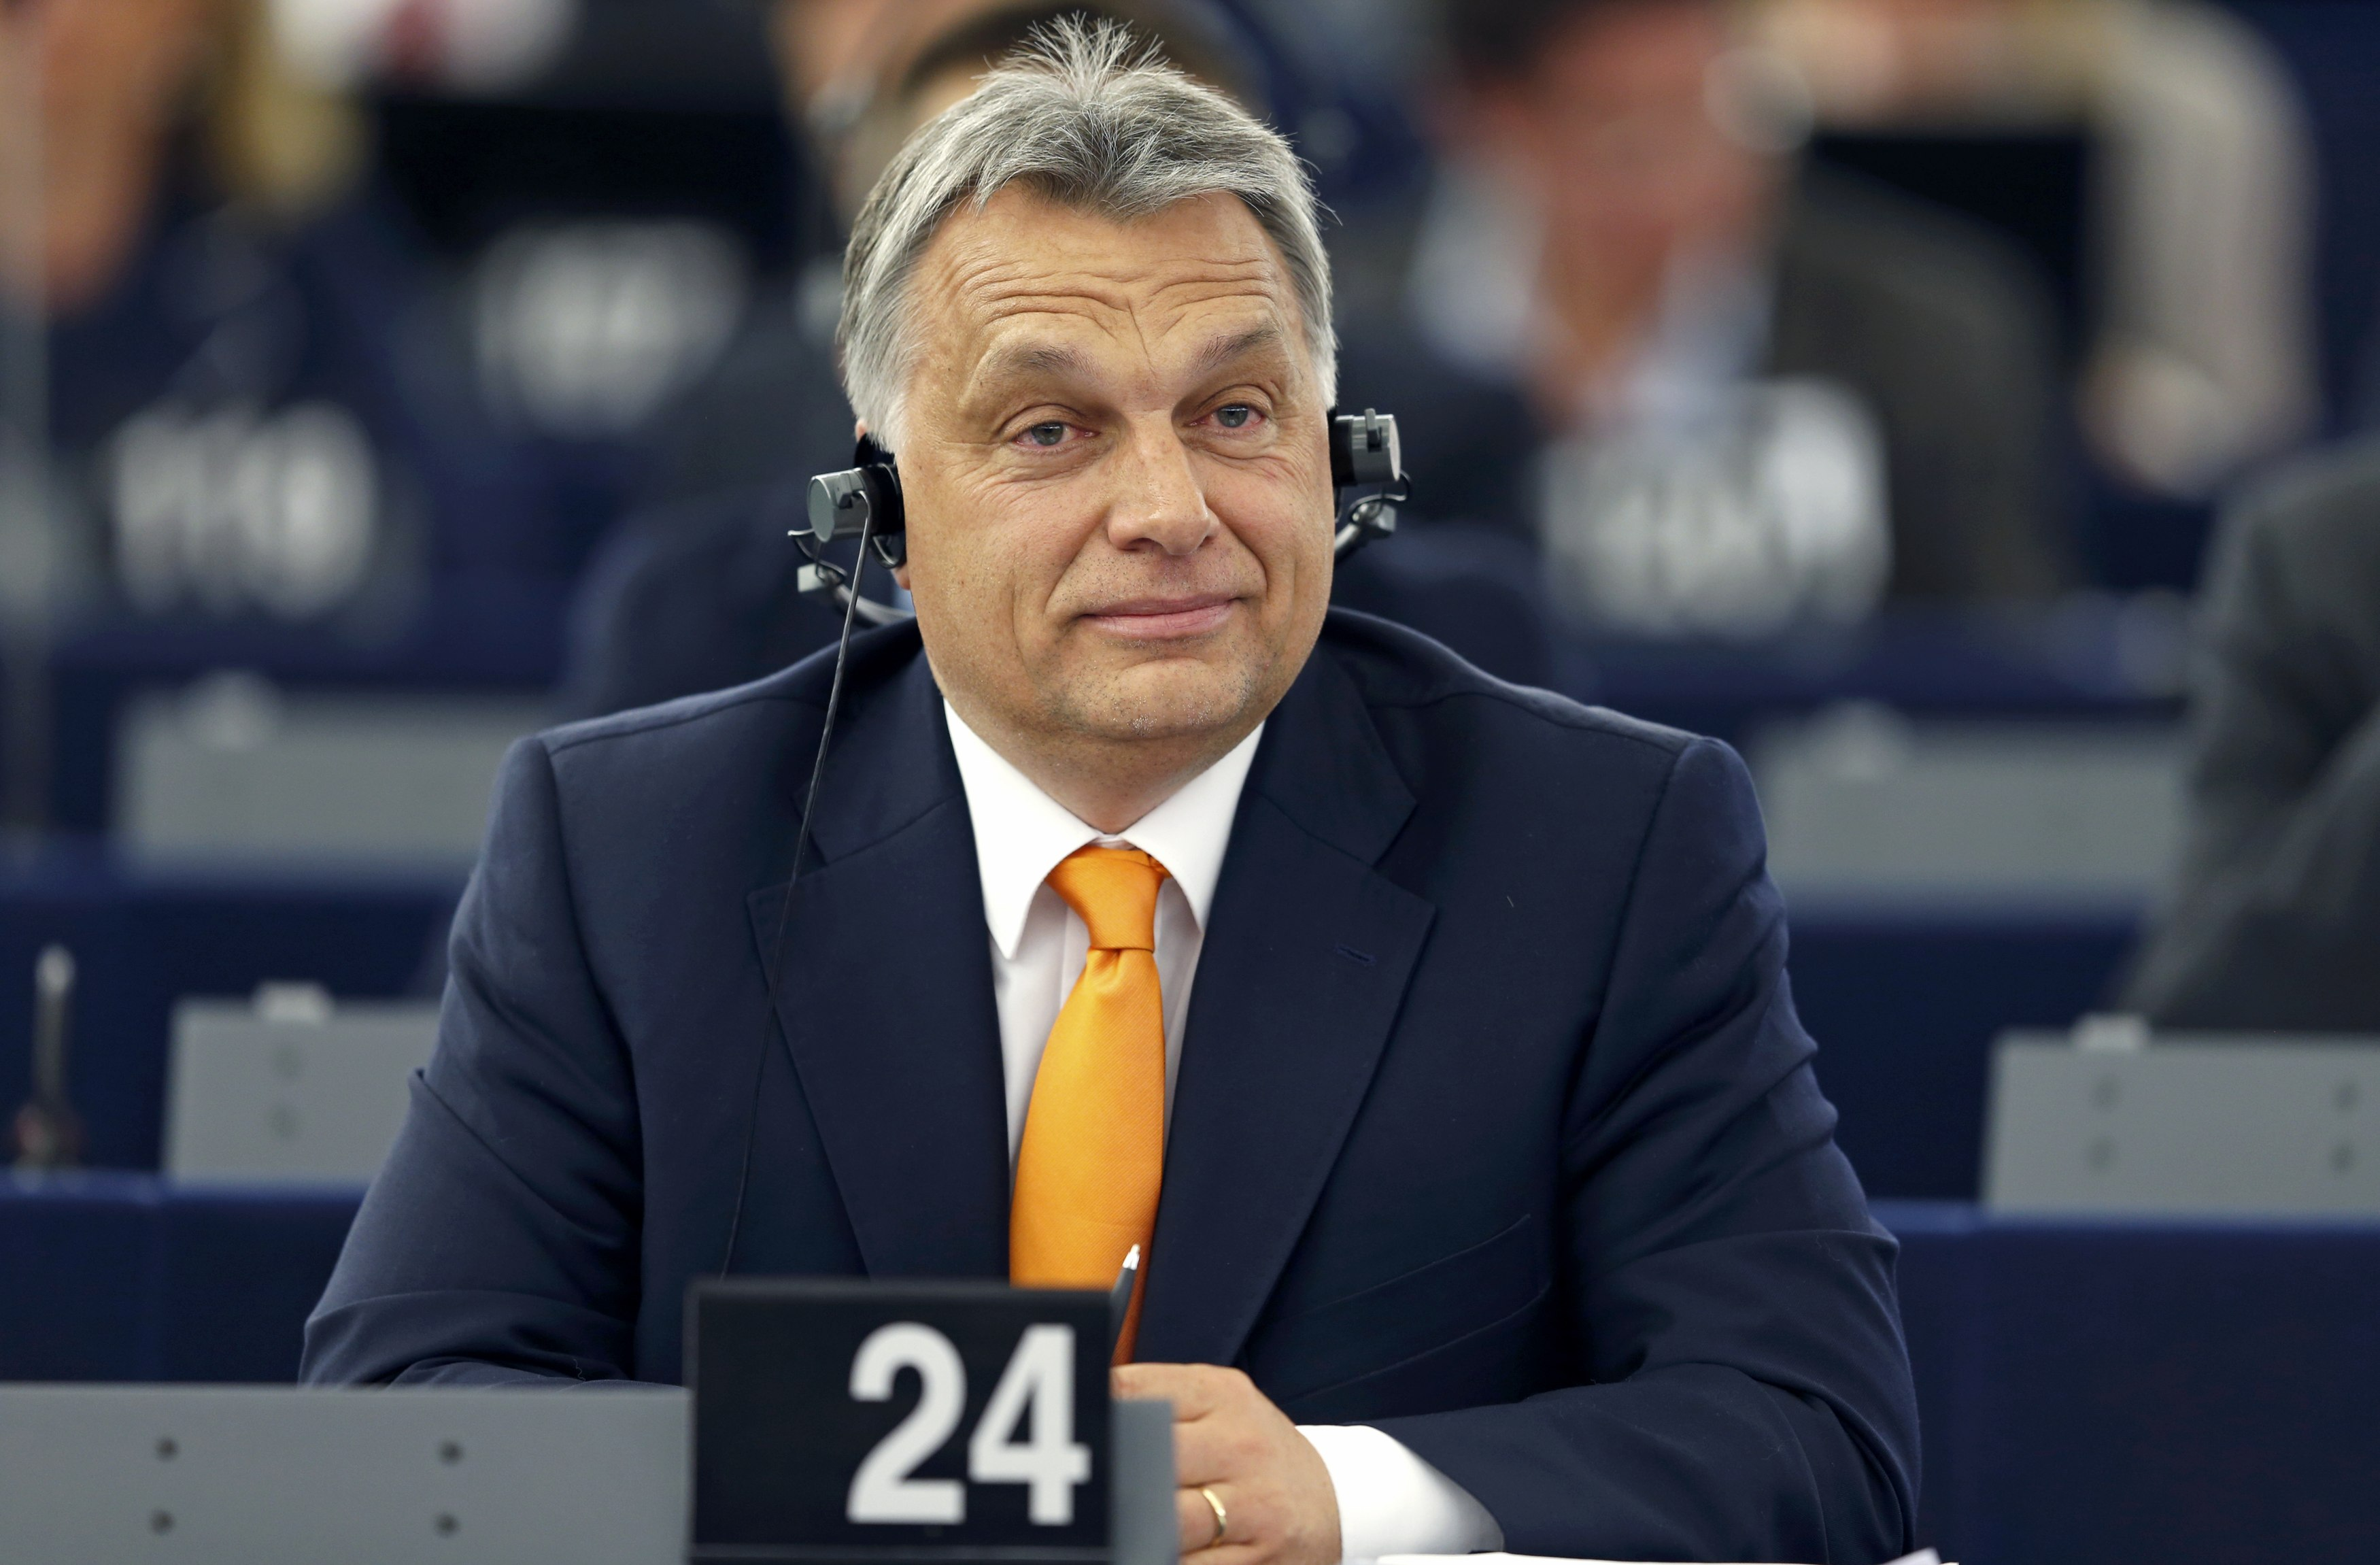 Hungarian Prime Minister Viktor Orban attends a debate on the situation in Hungary at the European Parliament in Strasbourg, France, May 19, 2015. REUTERS/Vincent Kessler